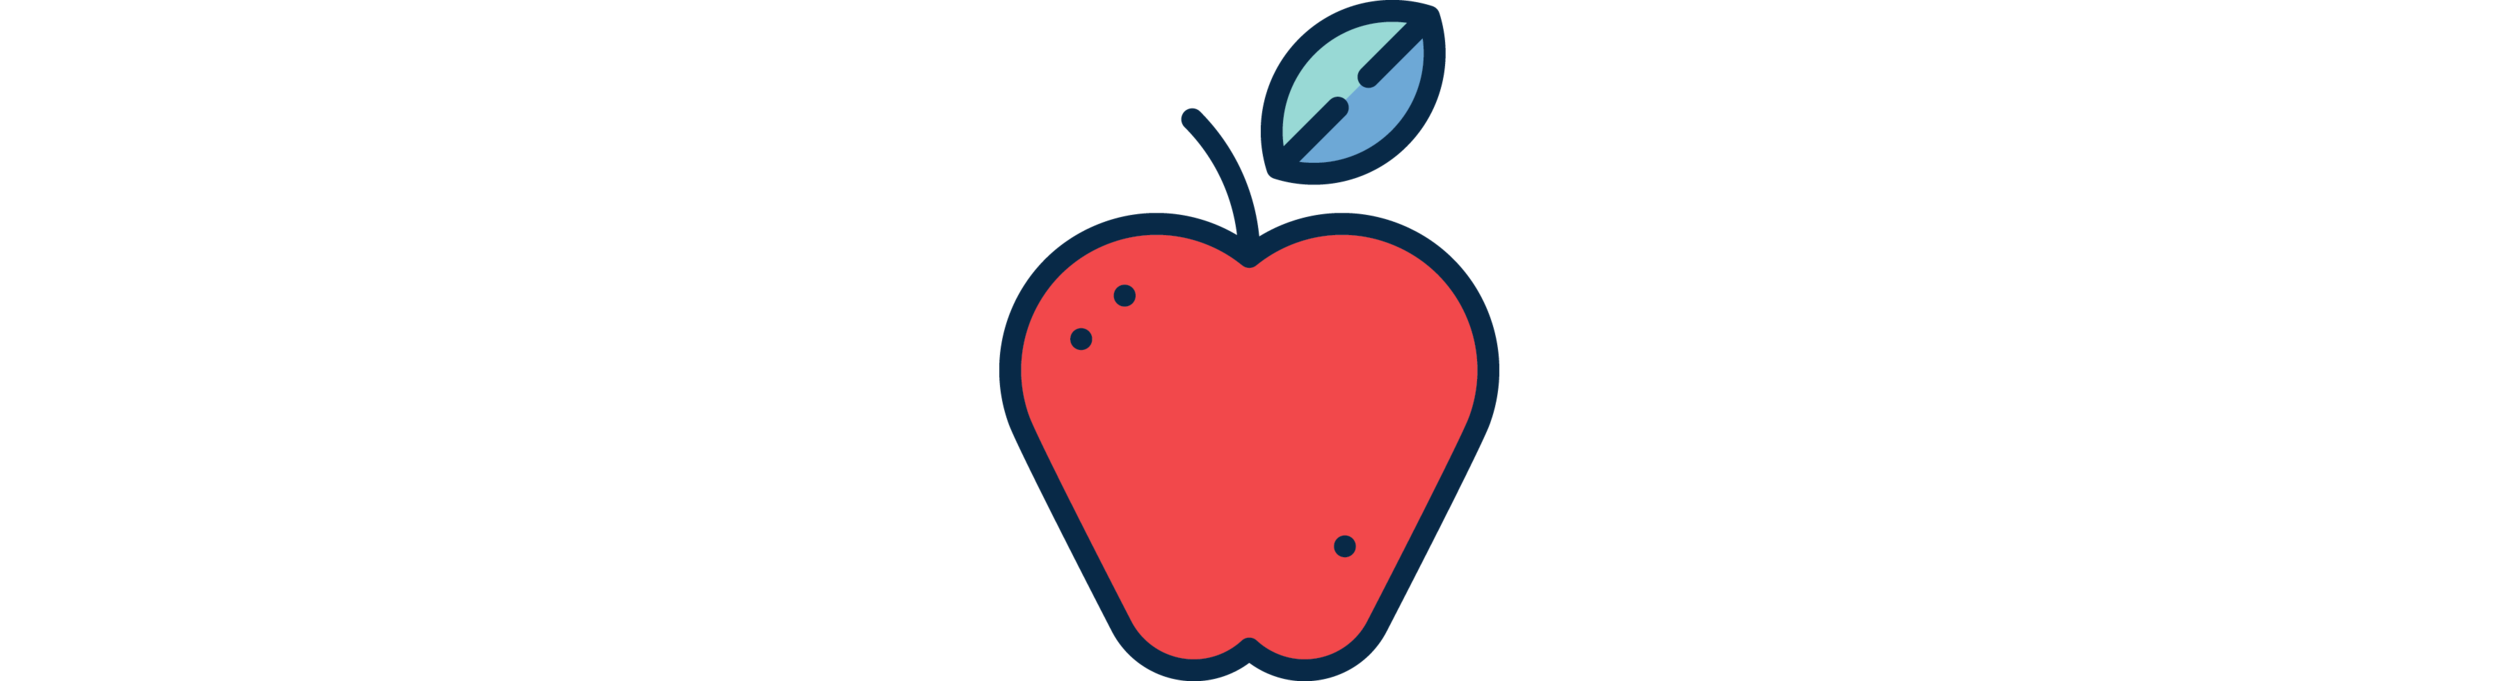 apple wide.png